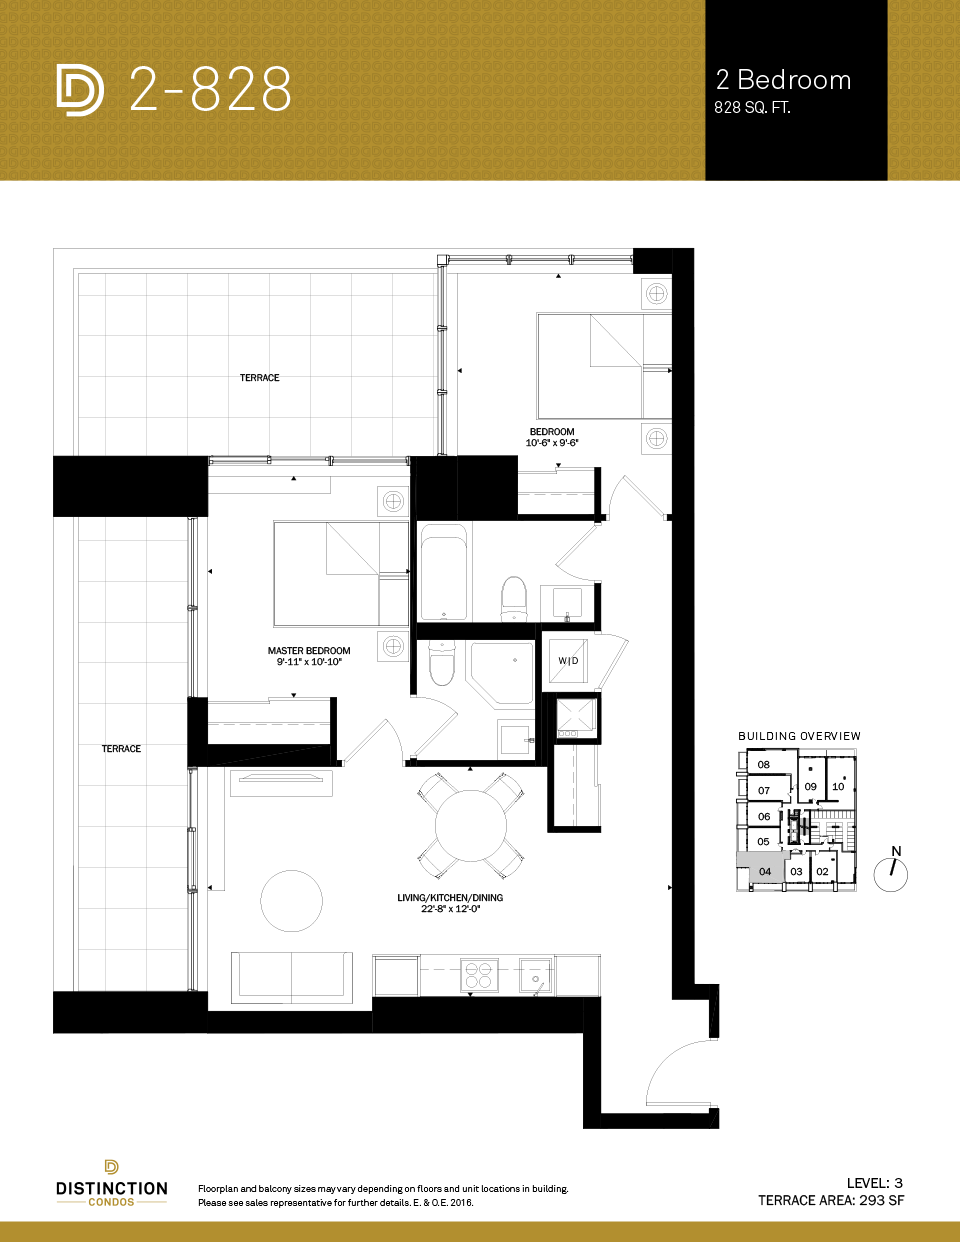 distinction condos floorplan 2-828